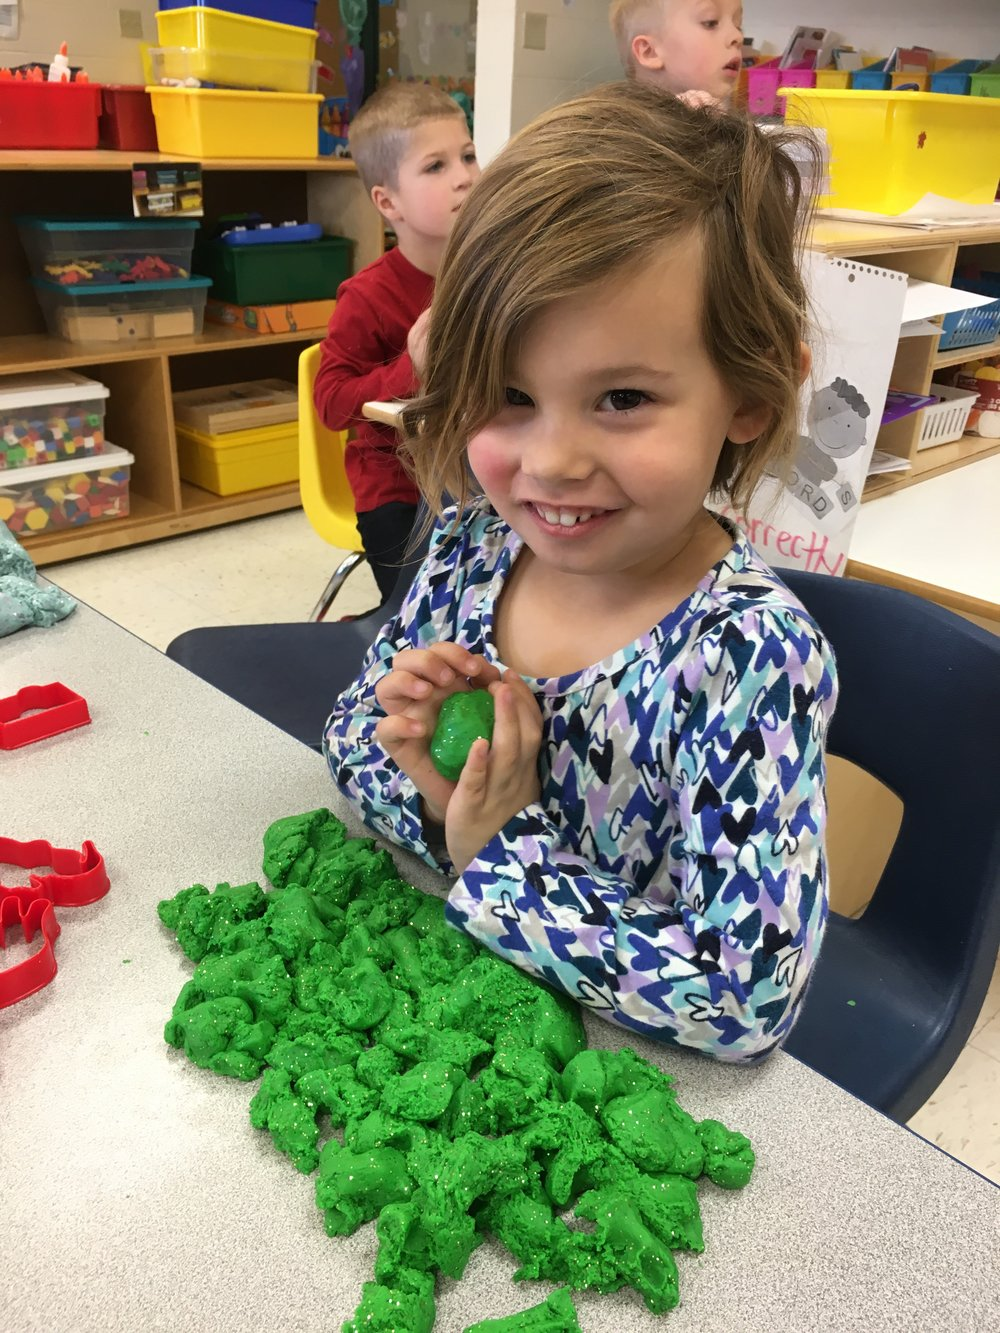 Thank you Mrs. Custer for making homemade play dough for our classroom!